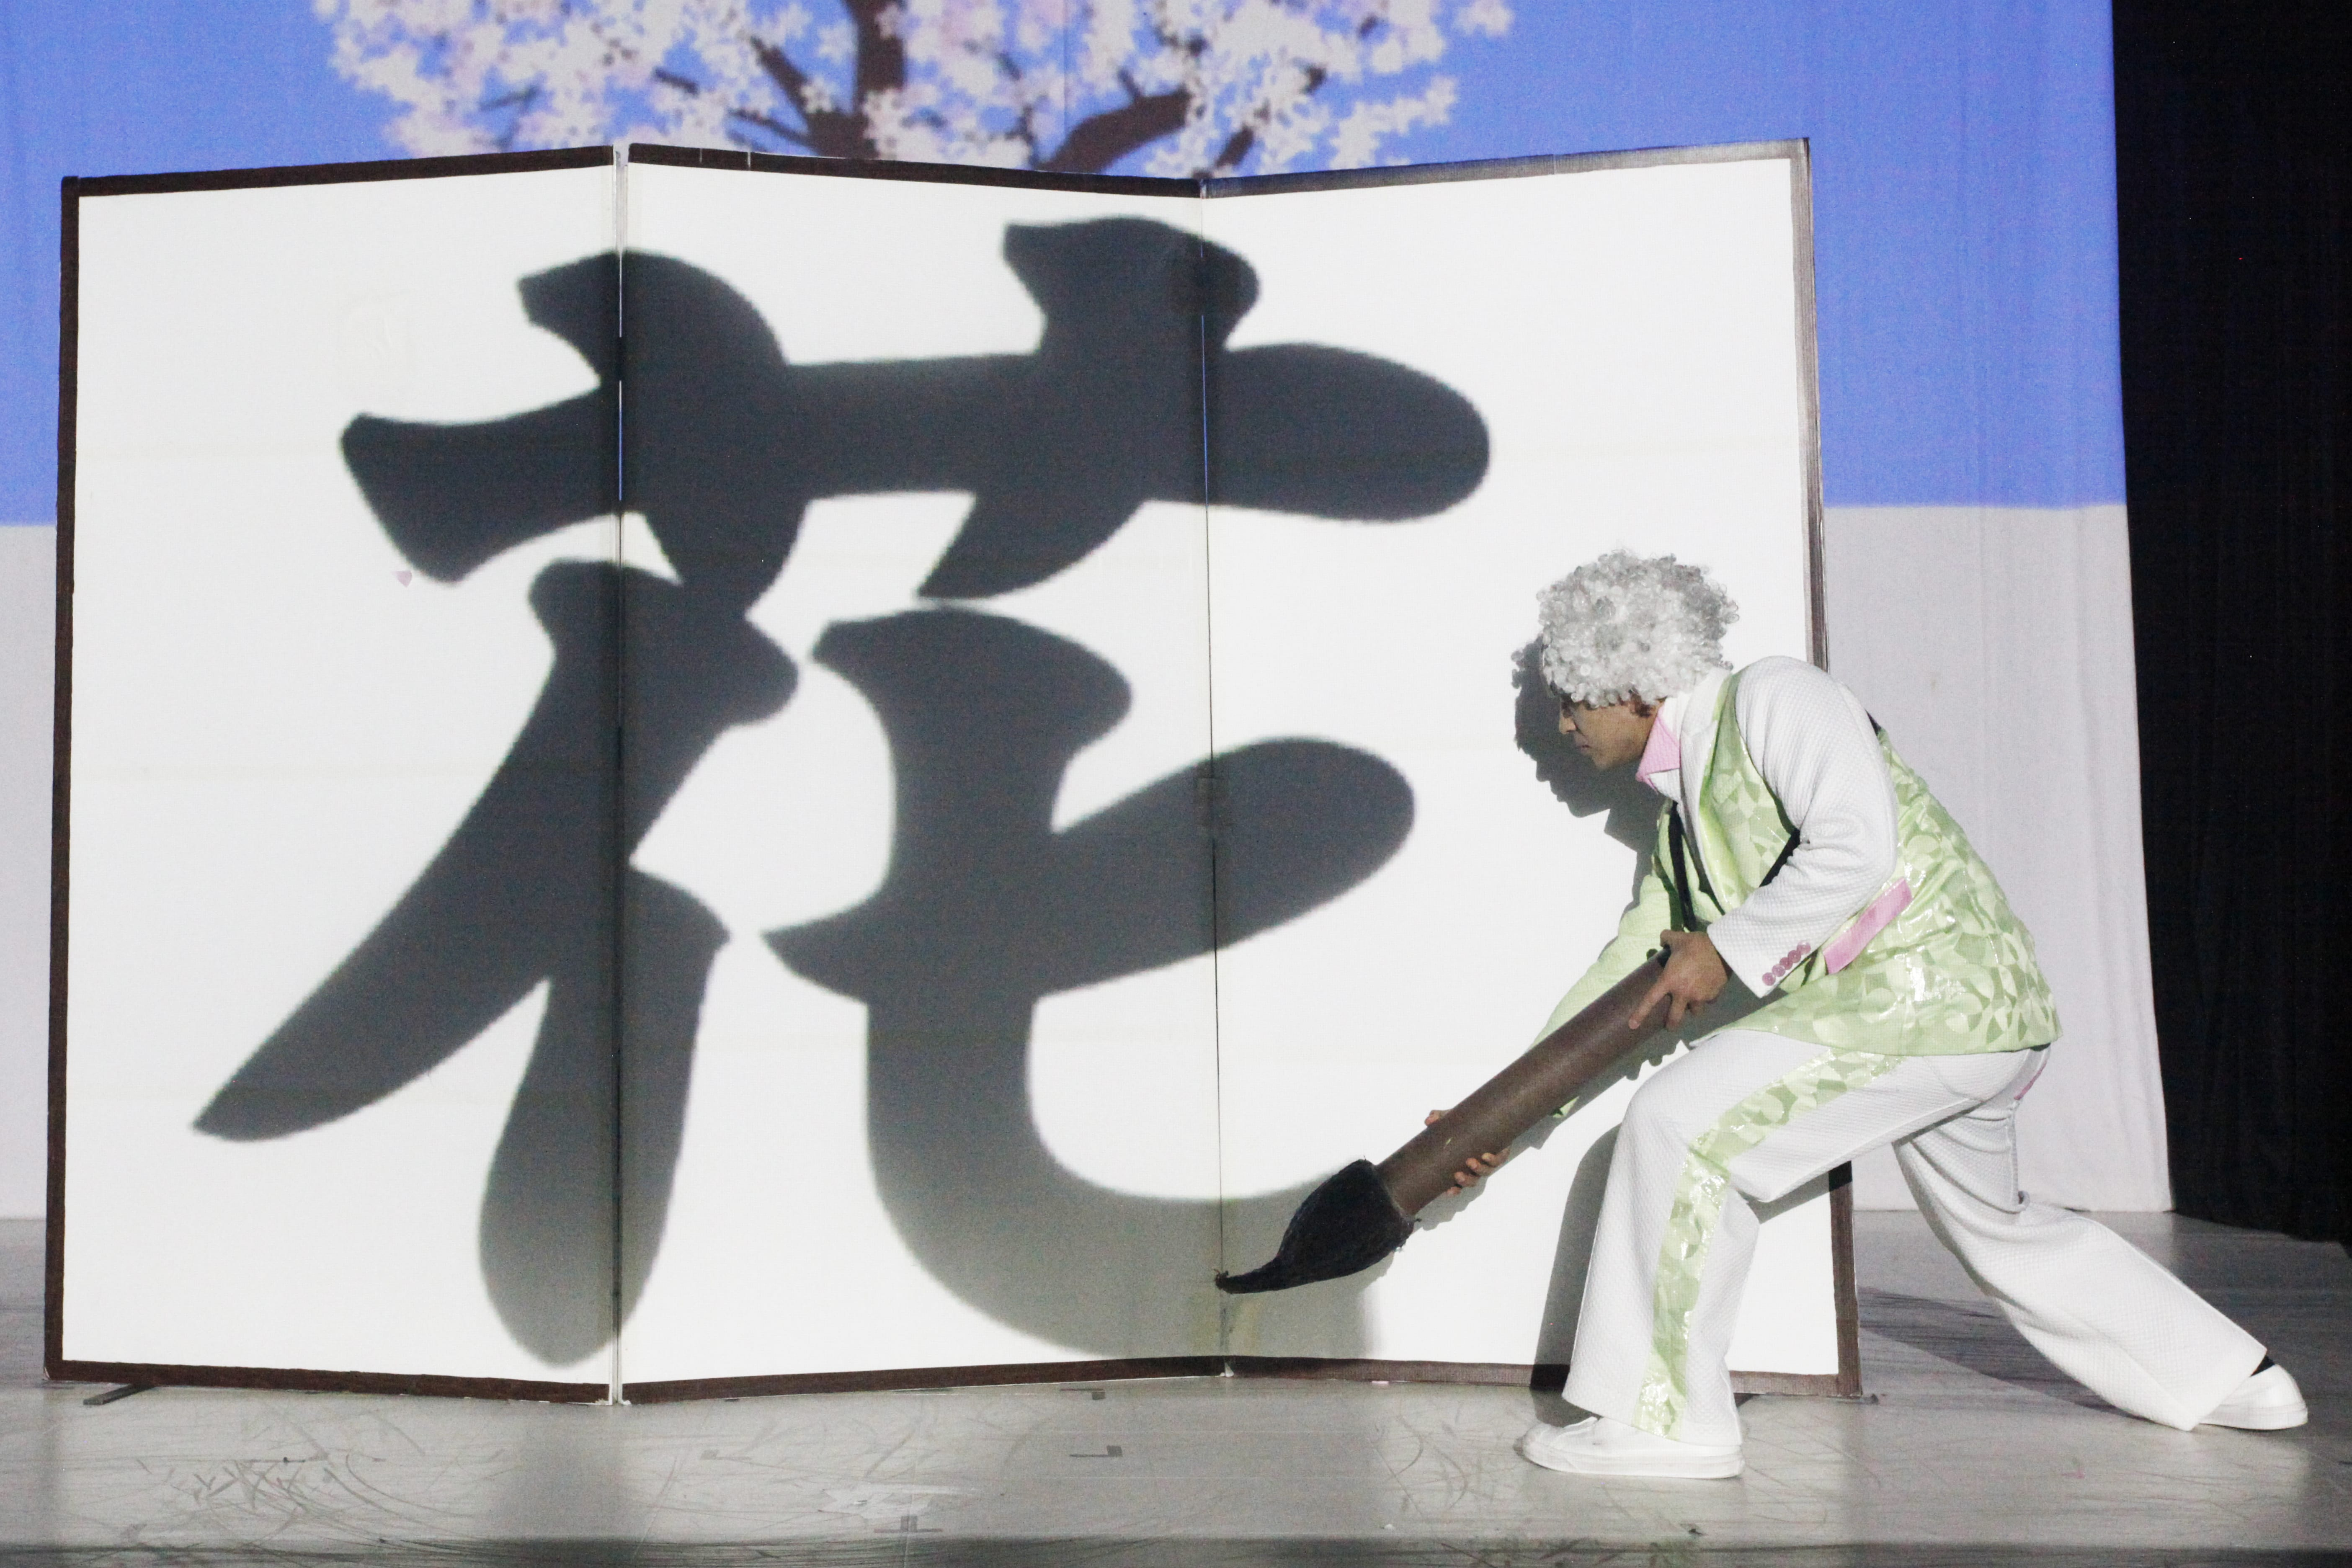 SIRO-A Aims to Build Japan's Broadway Culture Through 'TECHNO CIRCUS' Performance